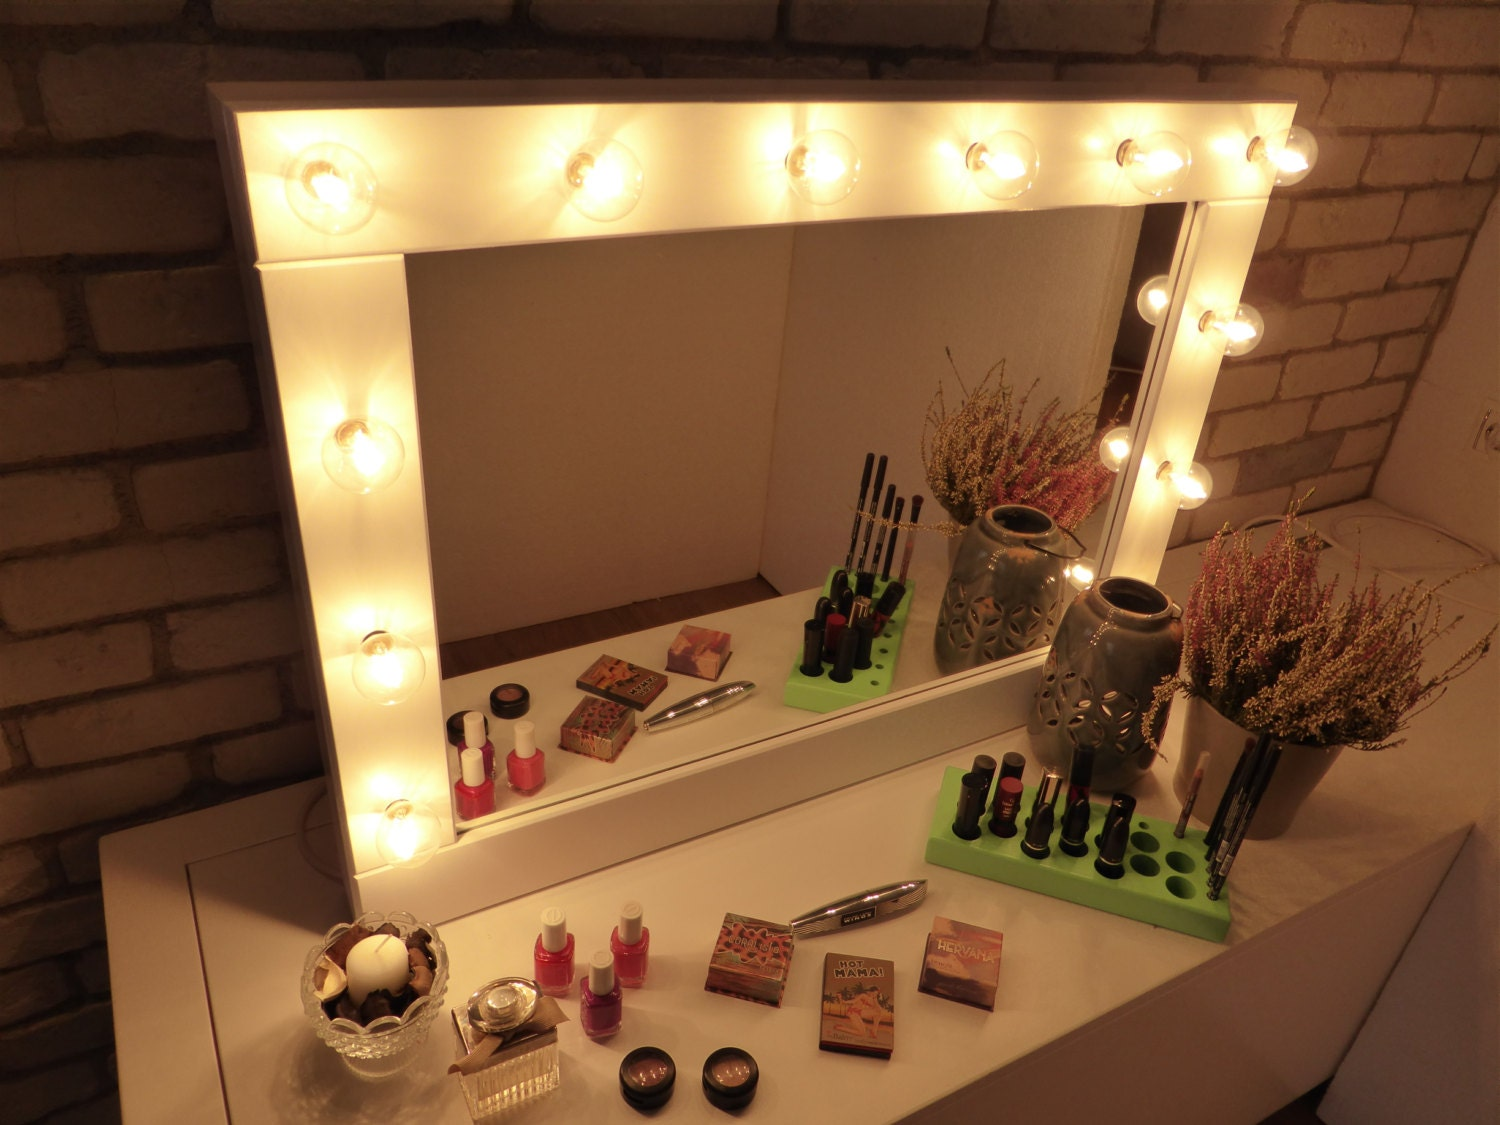 Vanity Light Up Mirror : Make up Mirror with lights Vanity mirror by CraftersCalendar